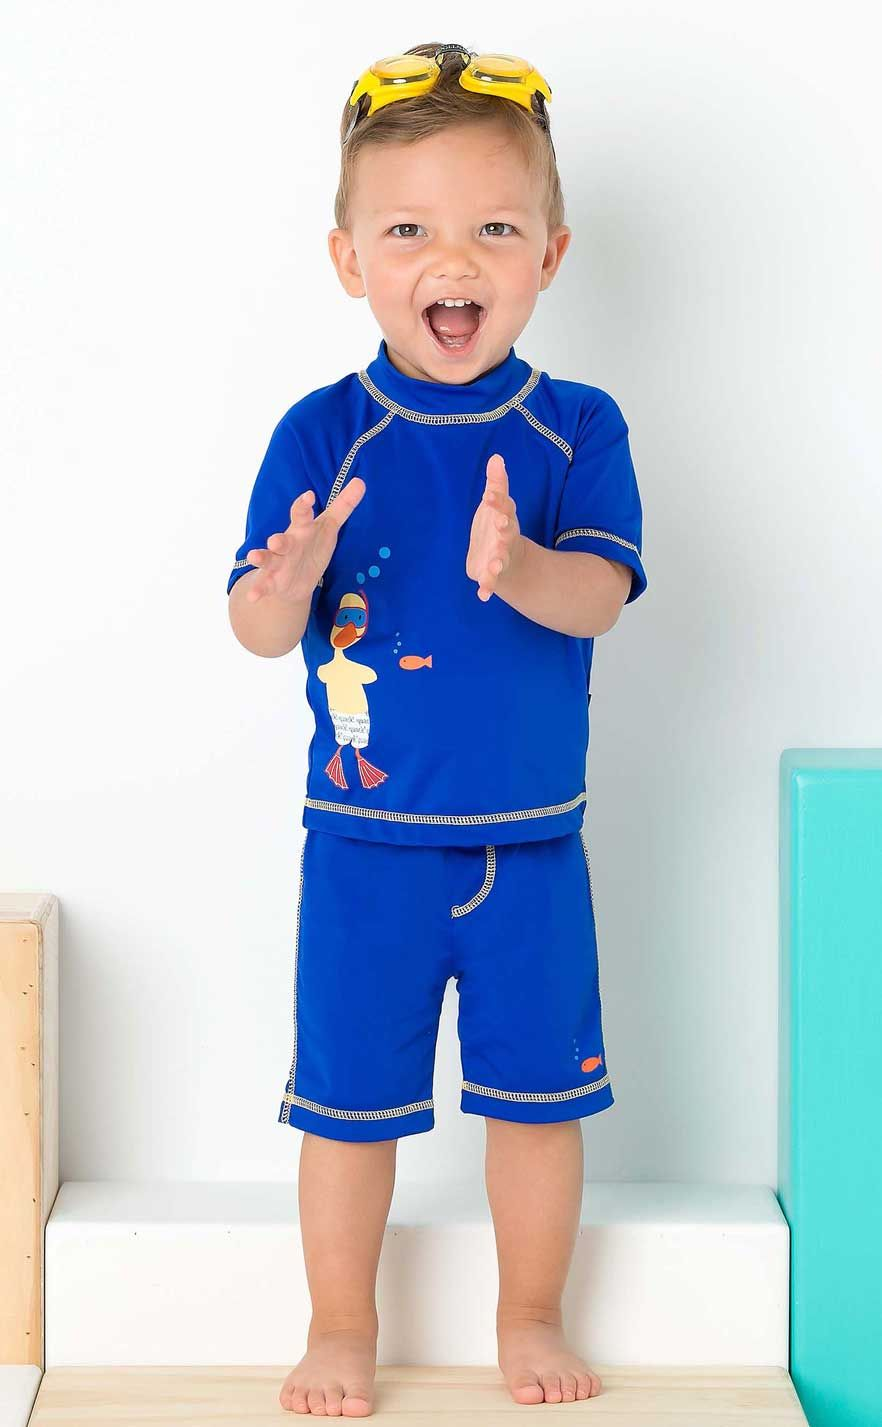 This Awesome Duck Swim Shirt And Swim Trunk Set For Infant